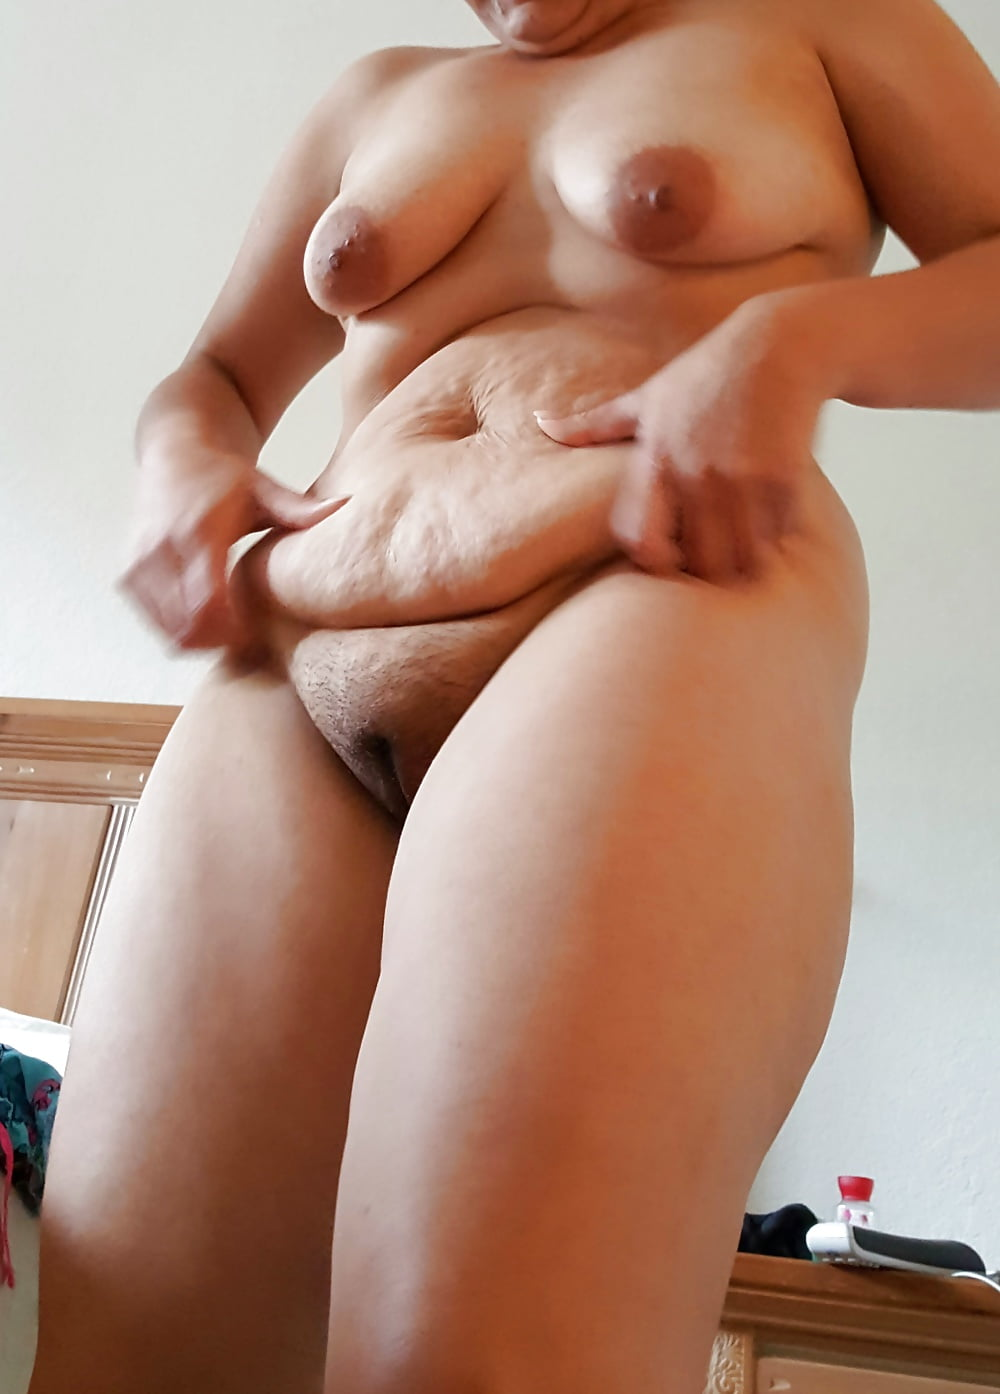 Latina maid fucks for money